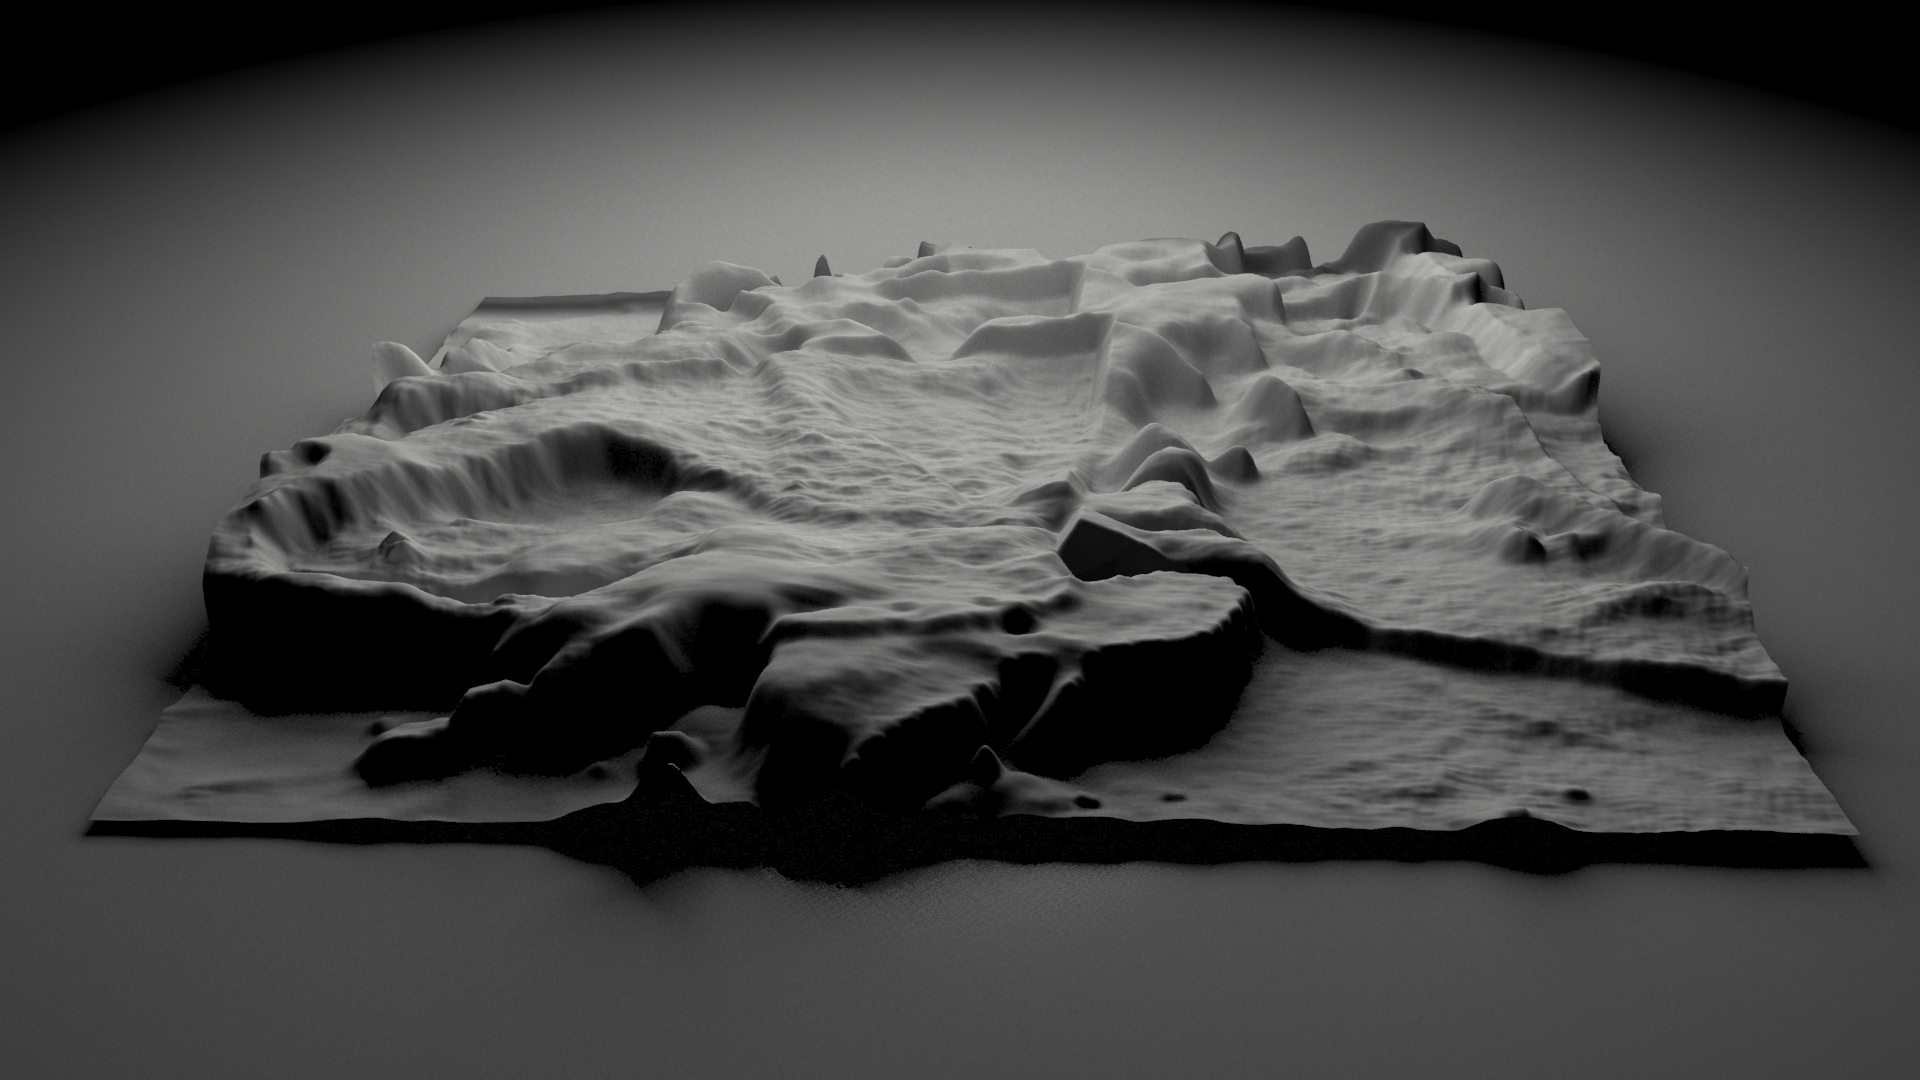 Imagined Landscape - Displacement